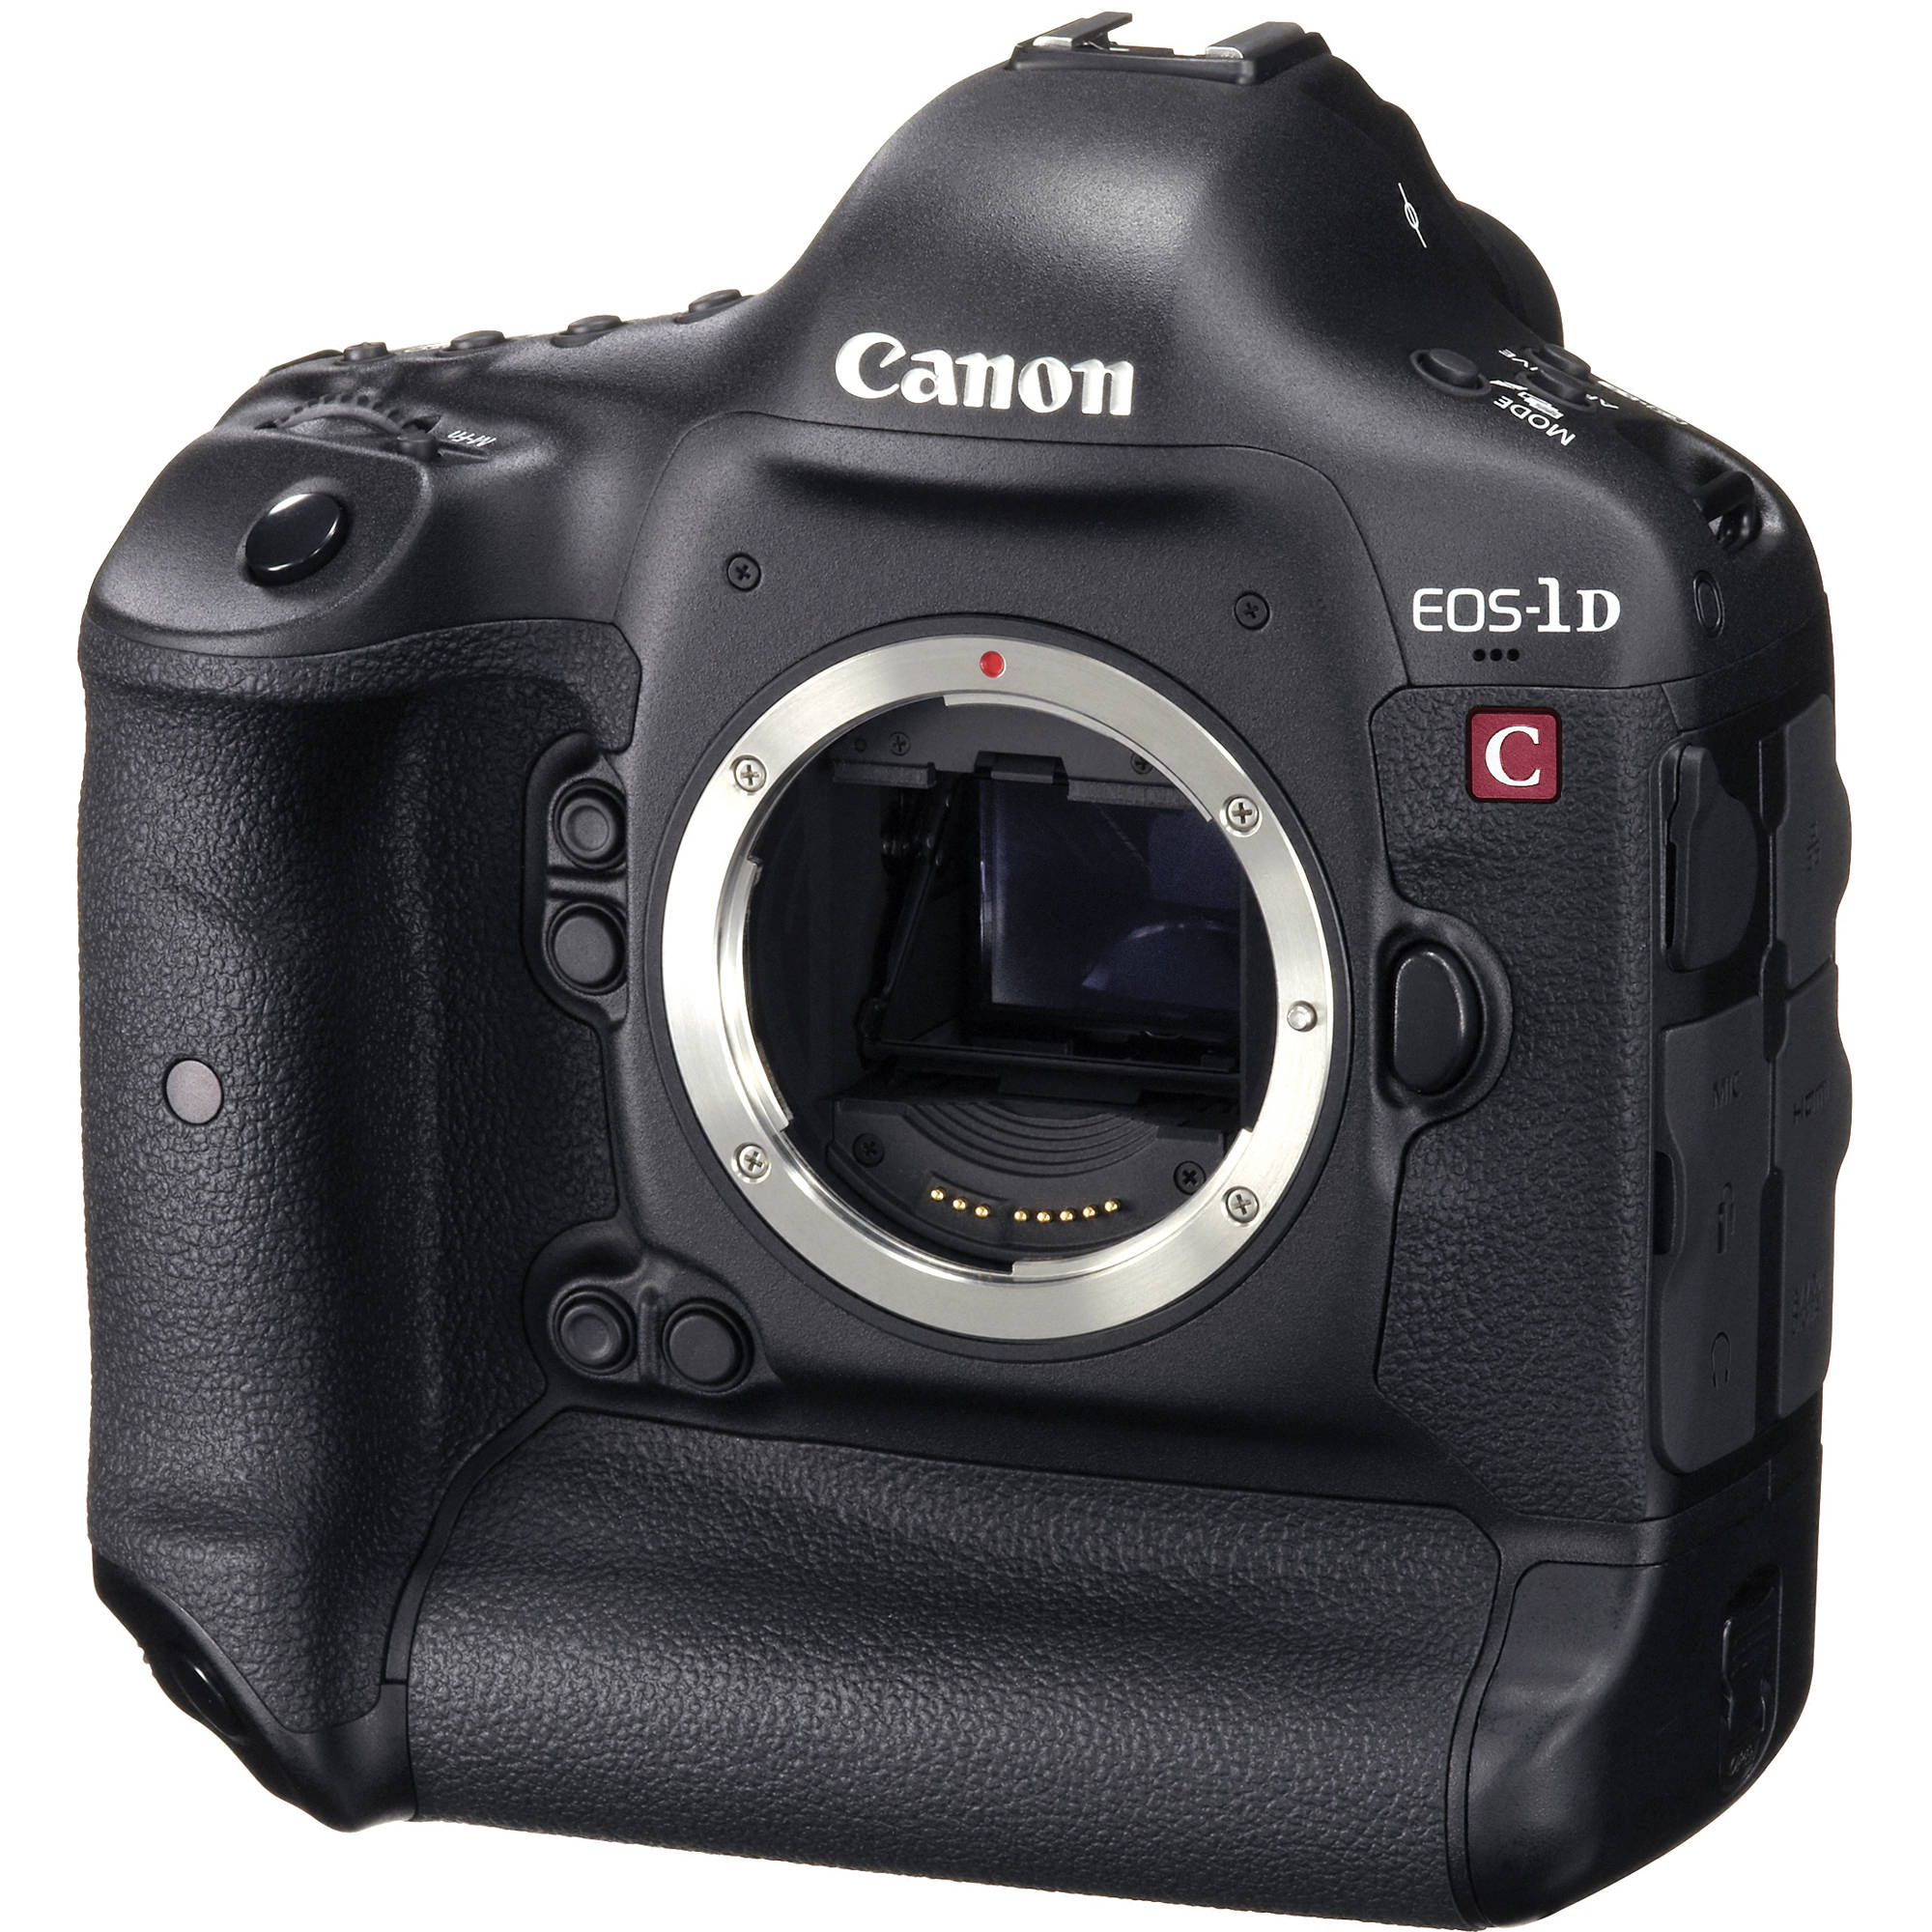 Canon EOS-1D C | Camera News at Cameraegg